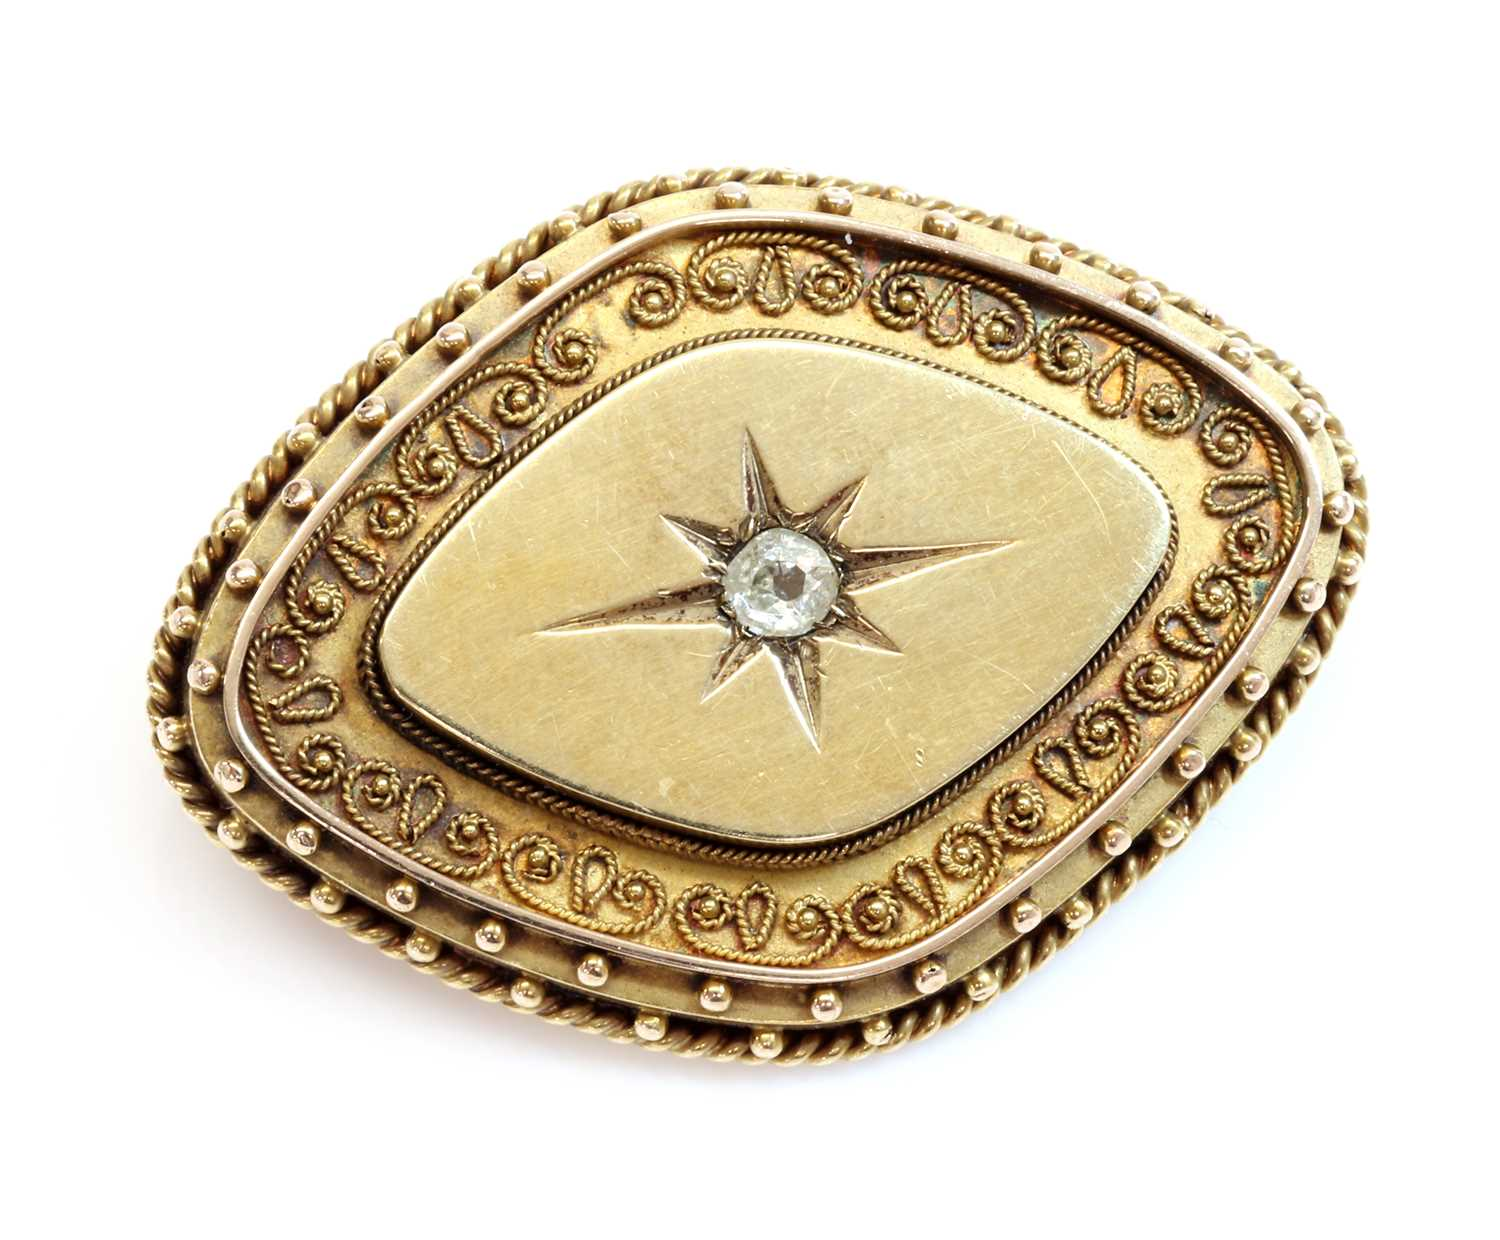 A Victorian archaeological revival Etruscan style diamond set brooch, c.1870,